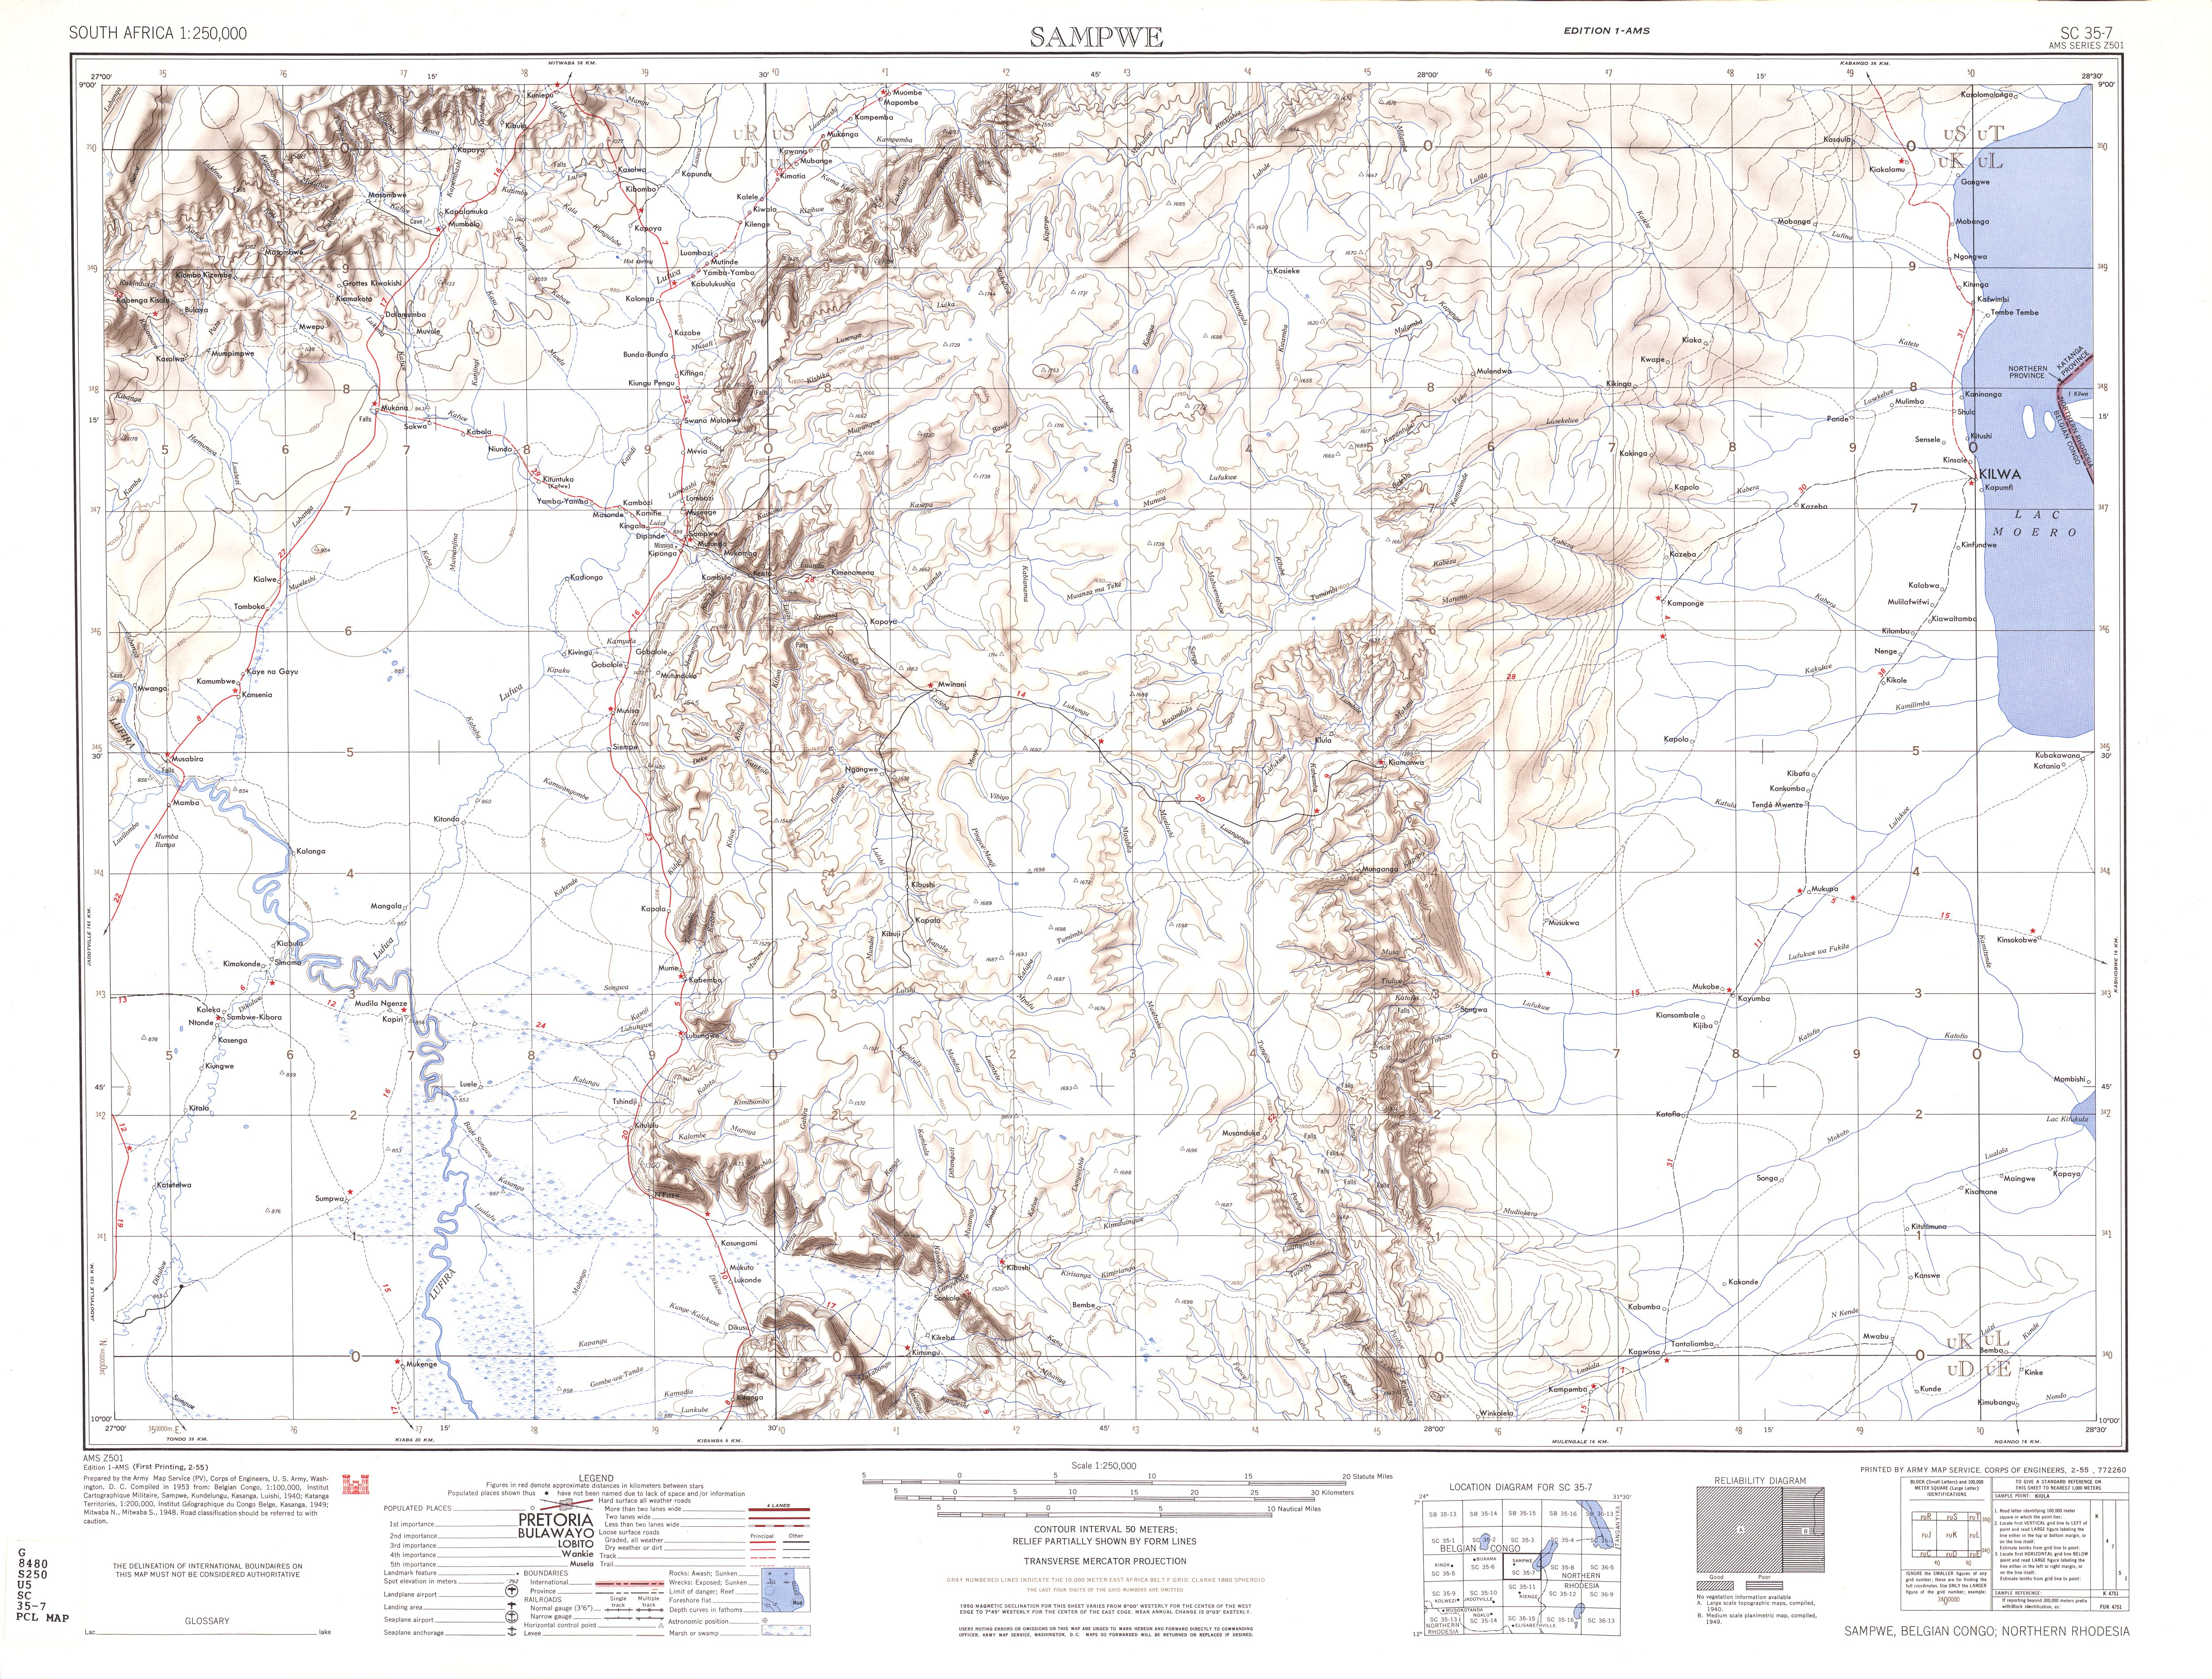 South Africa Ams Topographic Maps Perry Castaneda Map Collection